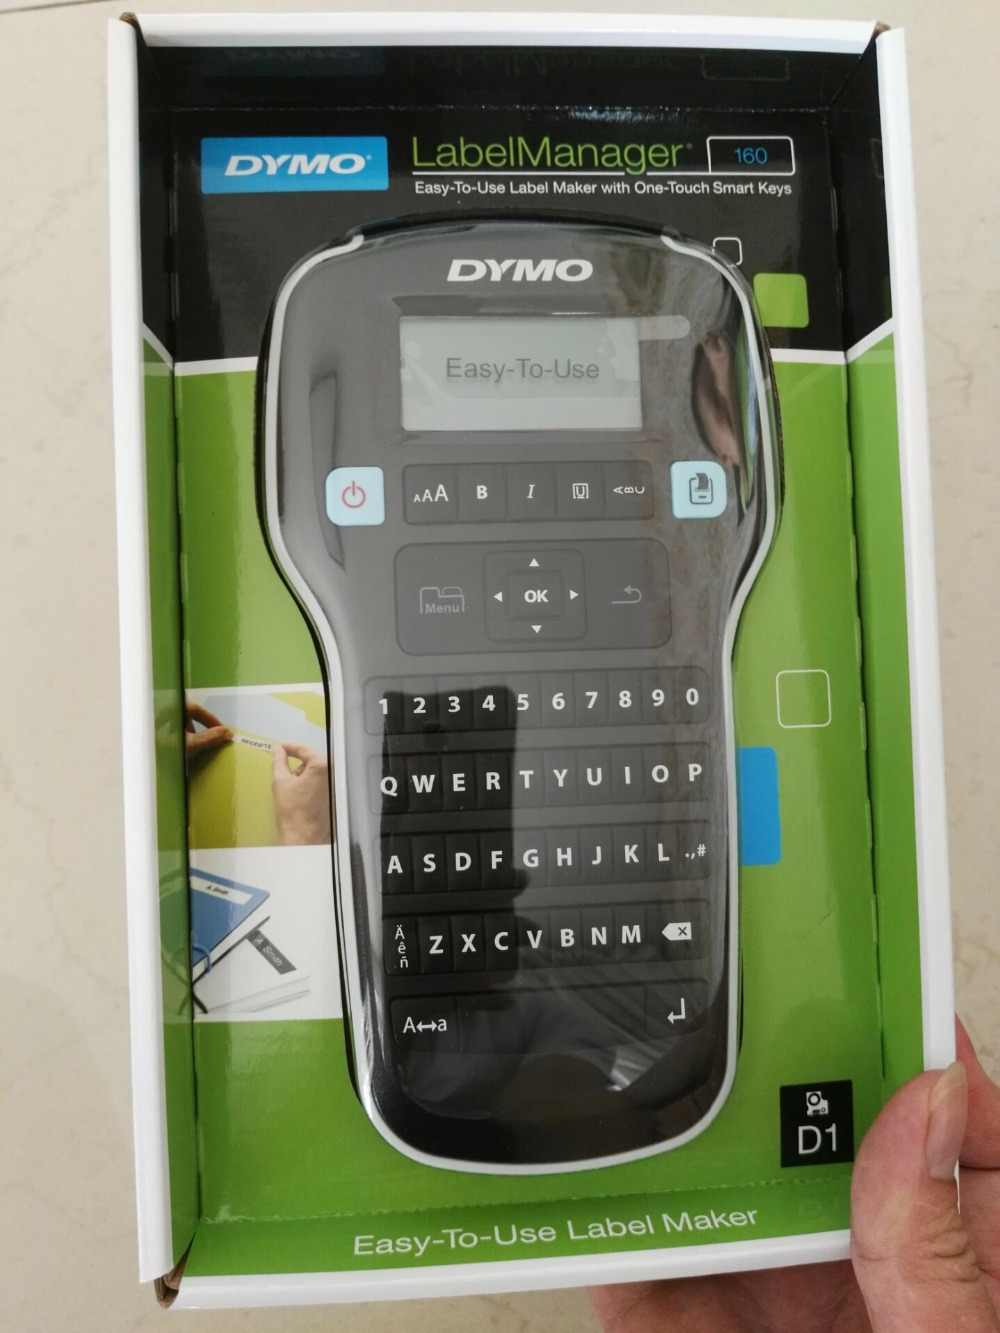 LM-160 English hand-held portable label printer LMR-160 stickers label printer LM160 For DYMO LM- 160